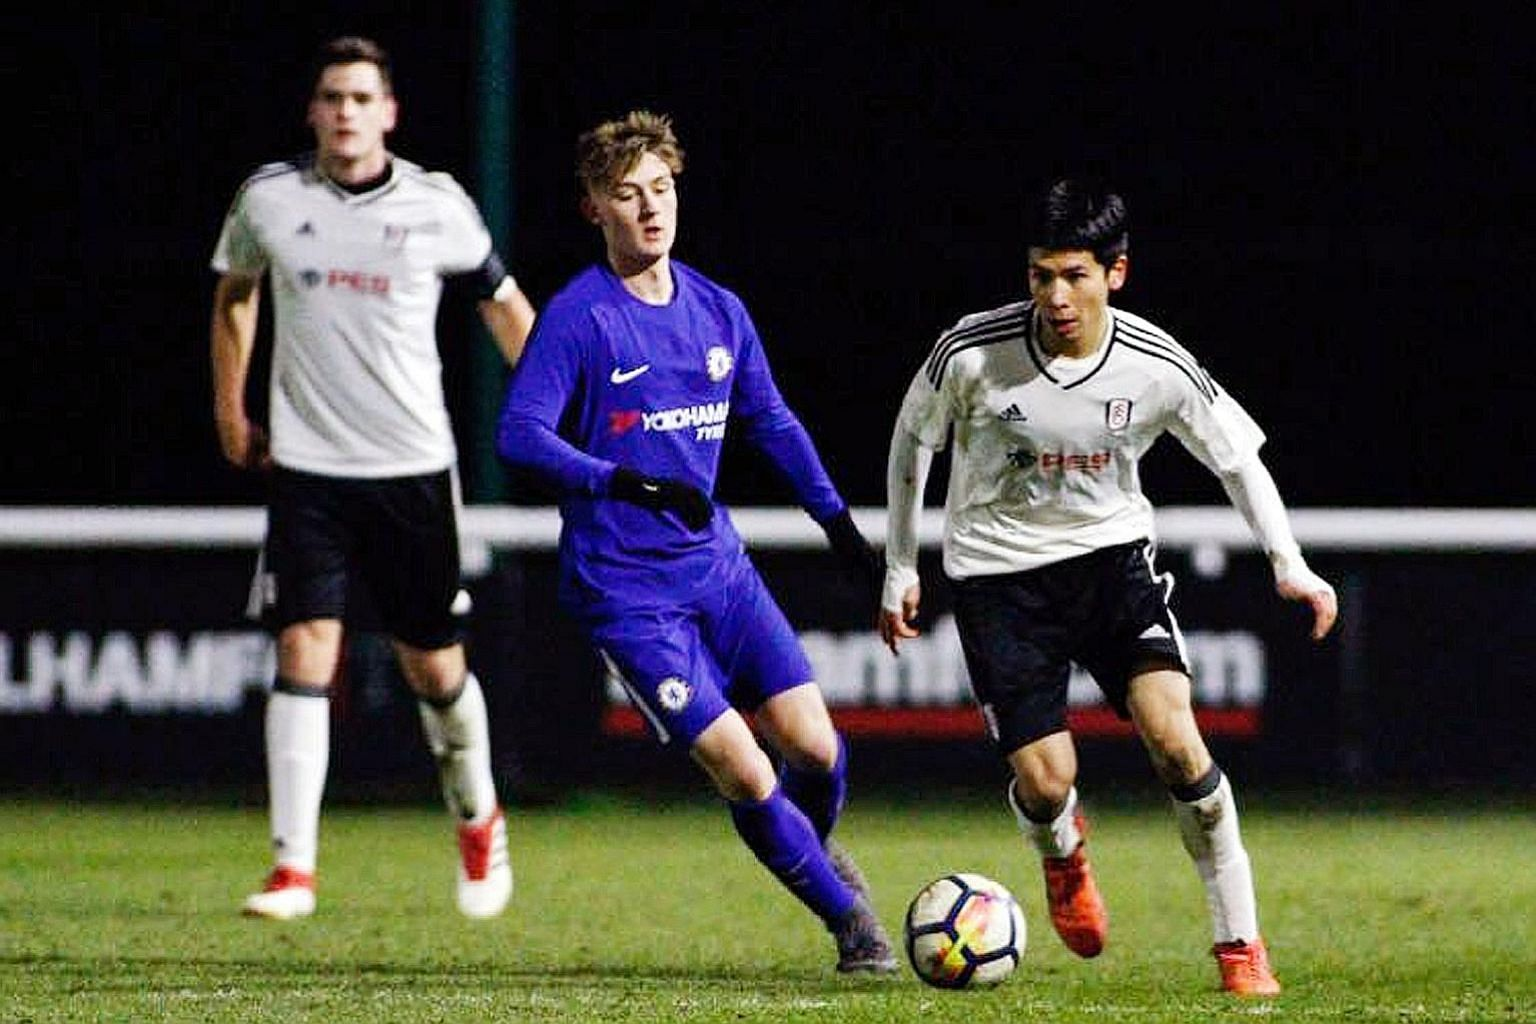 Singaporean footballer Ben Davis (at right) during a Fulham Under-18 match against Chelsea. The teenager's appeal for deferment had sparked a national debate last year. He is the first Singaporean to sign professional terms with an EPL team.